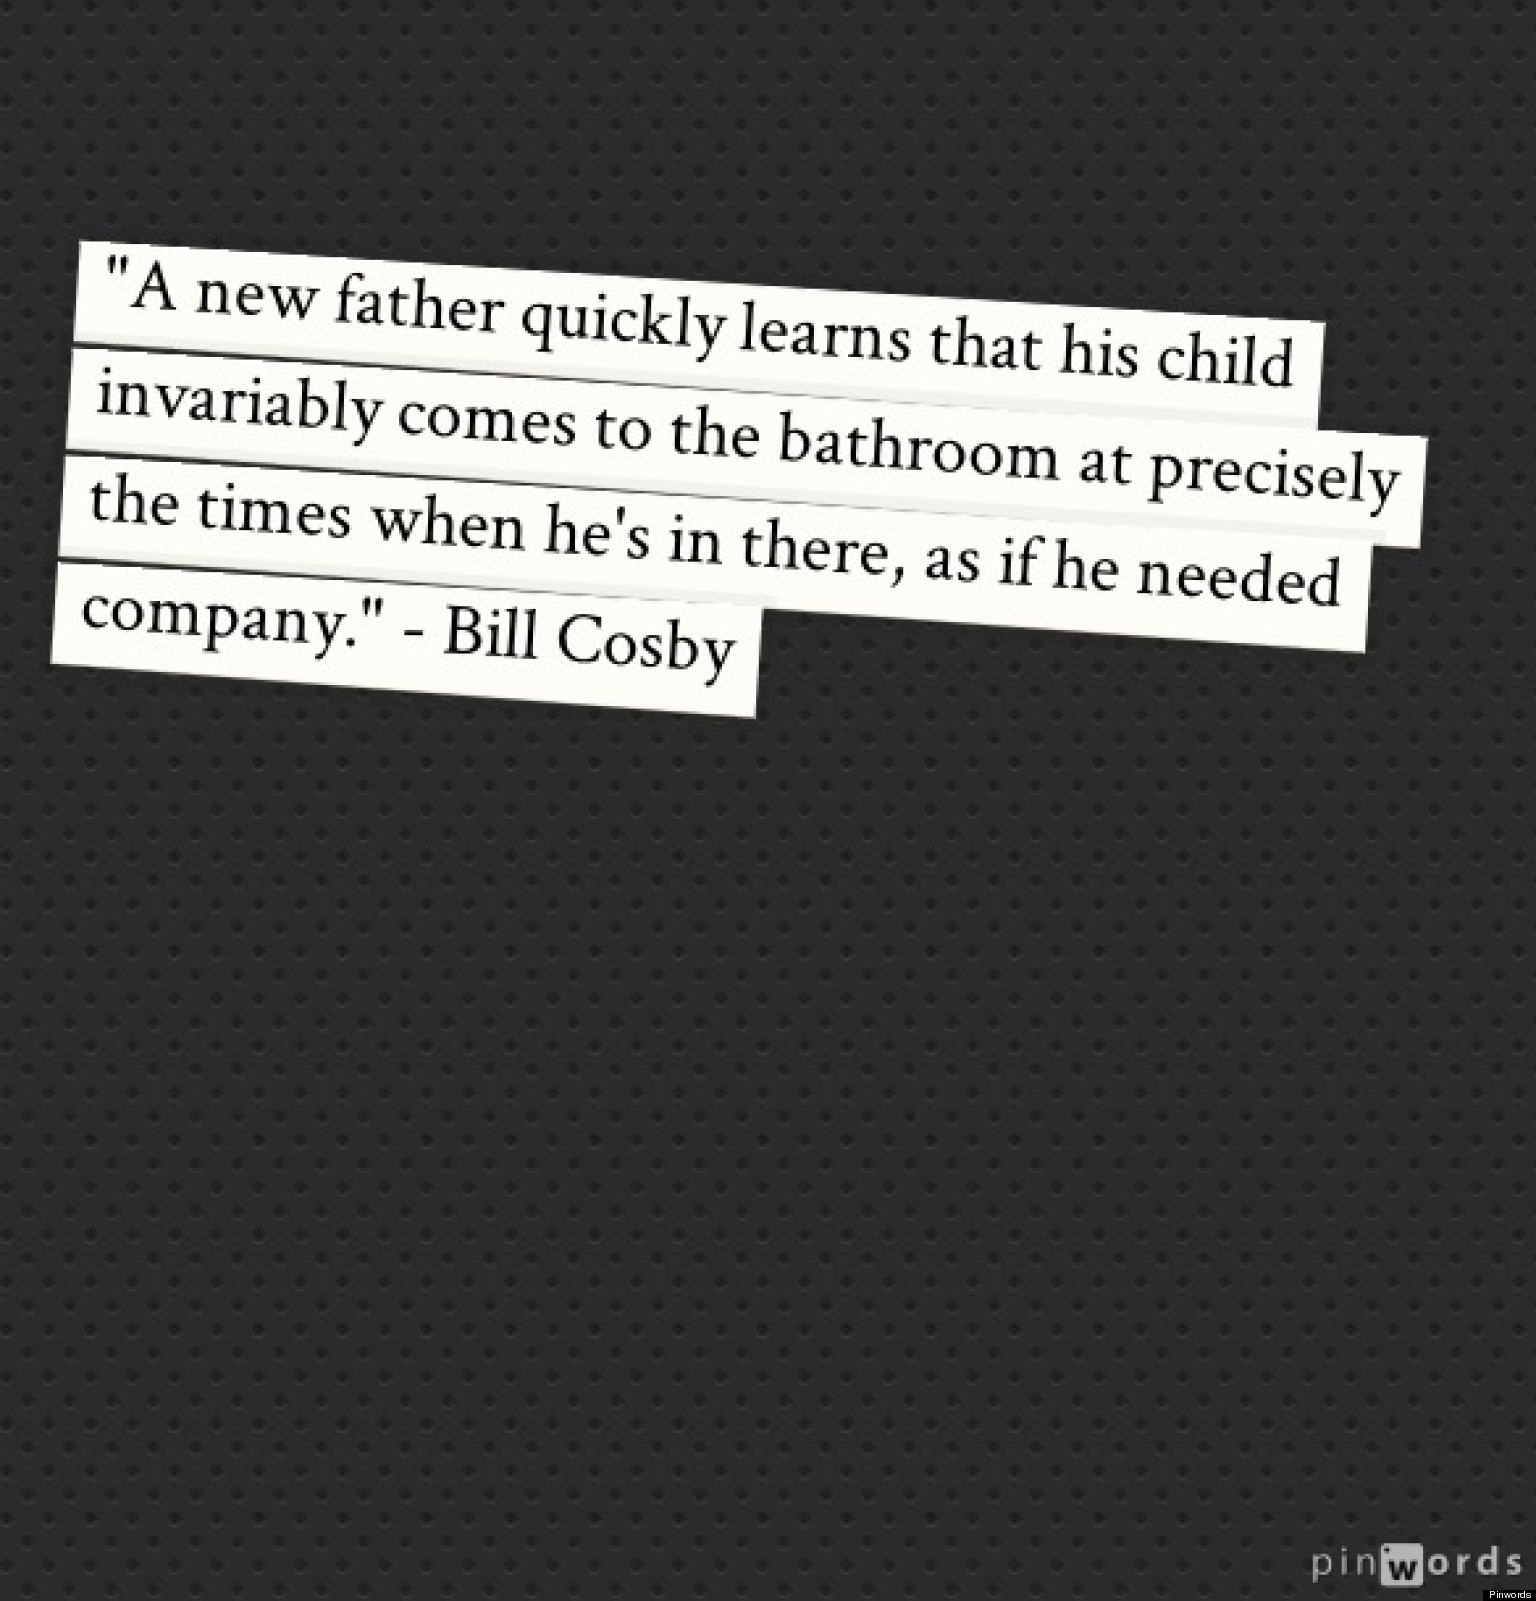 Quotes About Being a Father